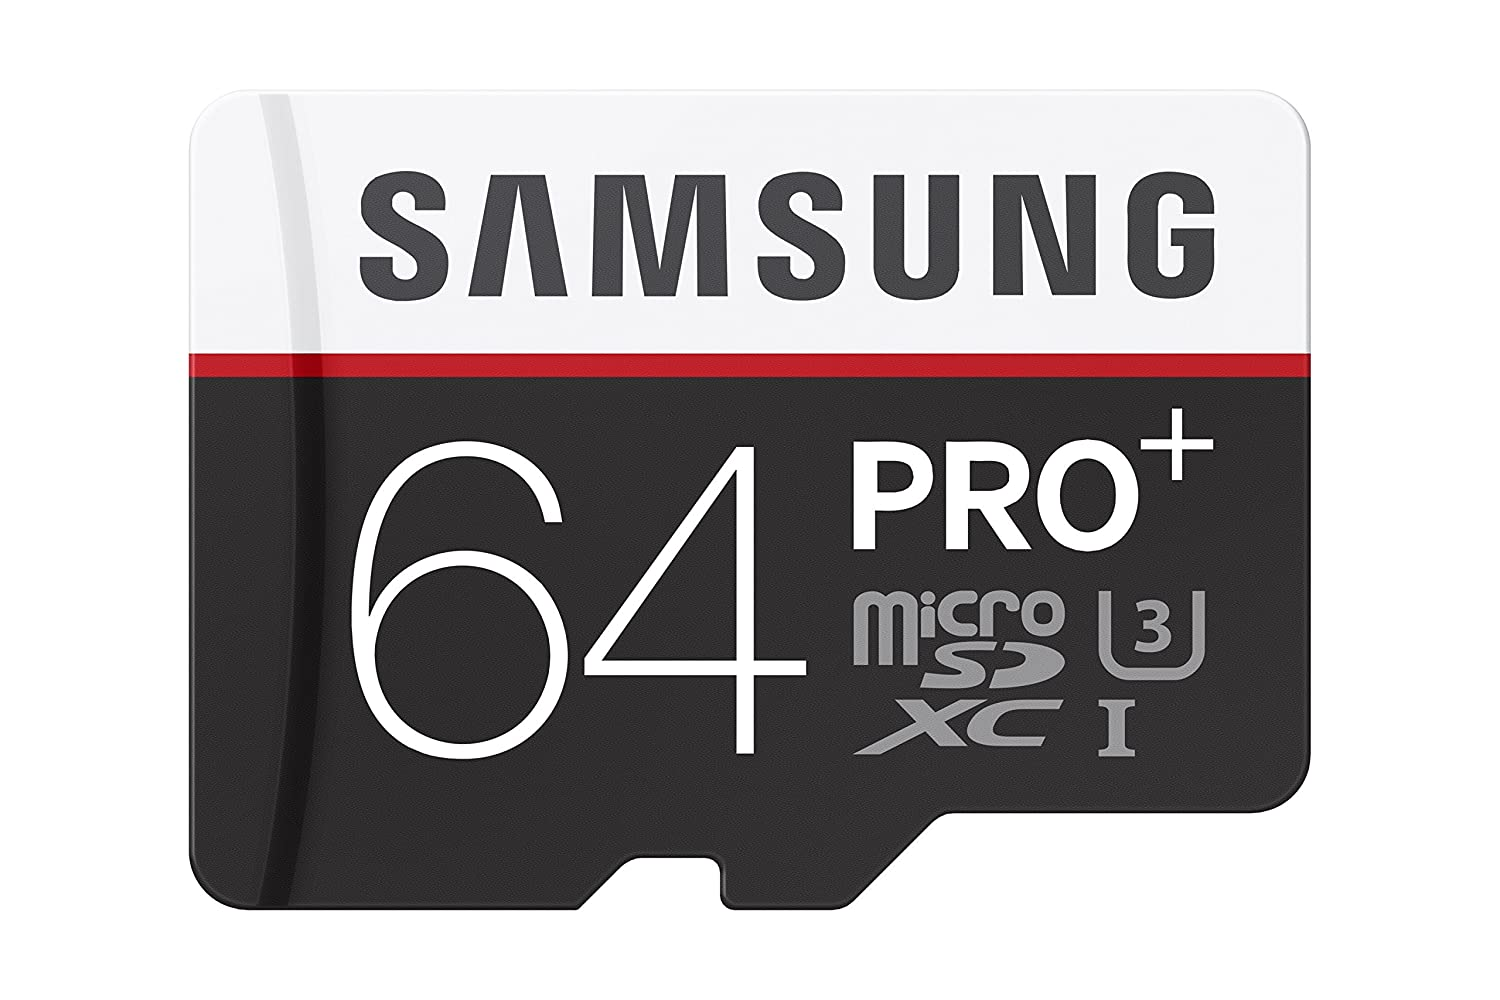 Samsung Pro Plus 64 Gb Micro Sdxc Memory Card     95 Mb/S Read, 90 Mb/S Write (Mb Md64 Da/Apc) by Samsung